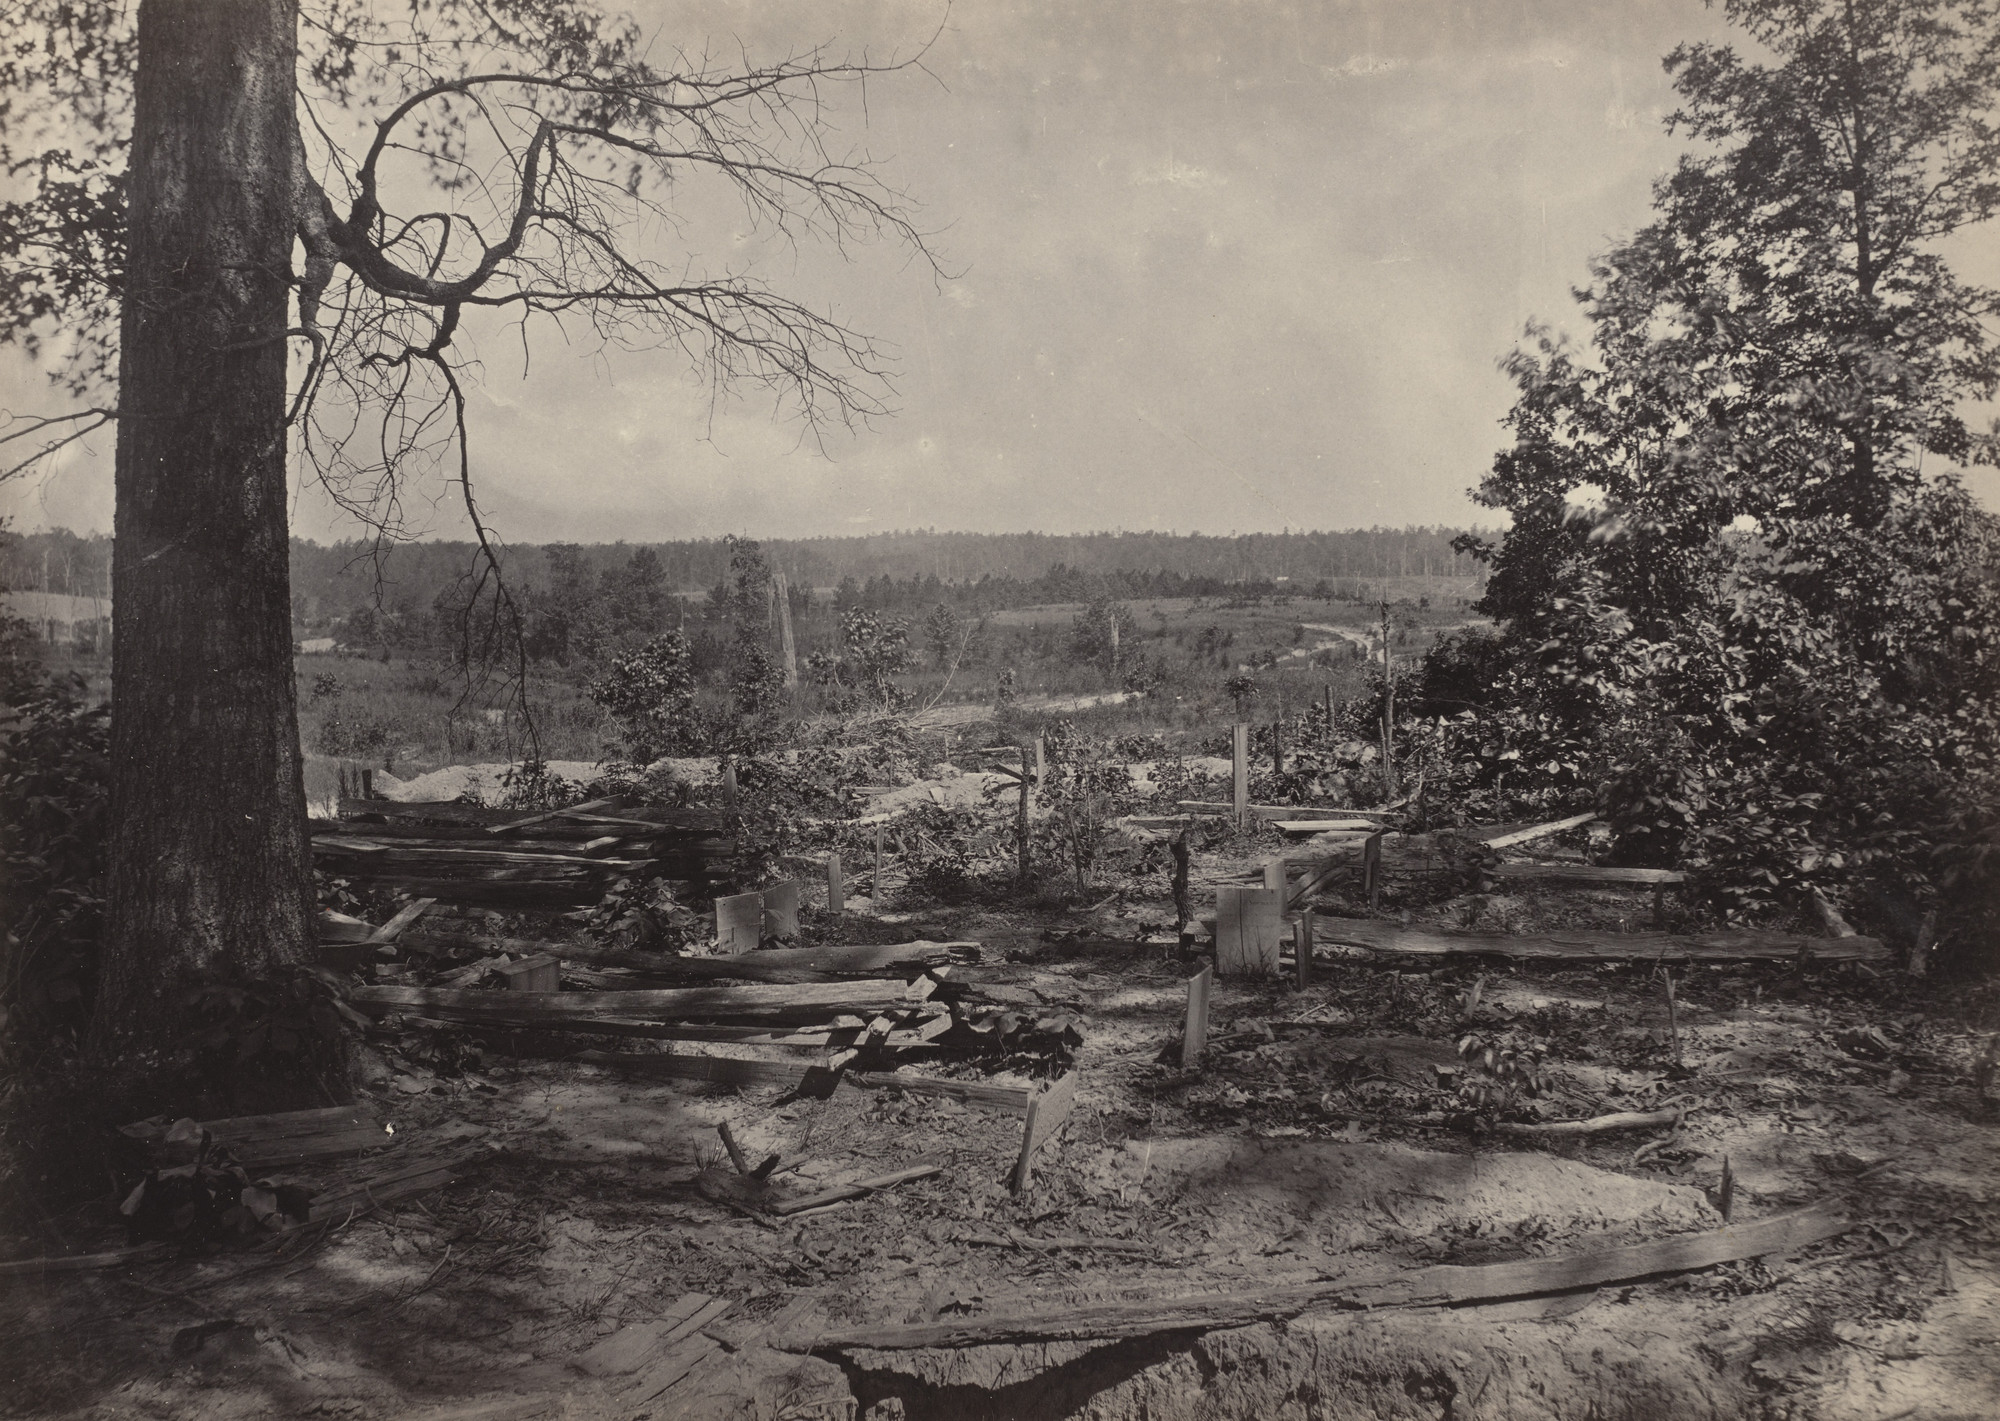 George Barnard. The Battlefield of Peach Tree Creek from the album Photographic Views of Sherman's Campaign. 1864-65